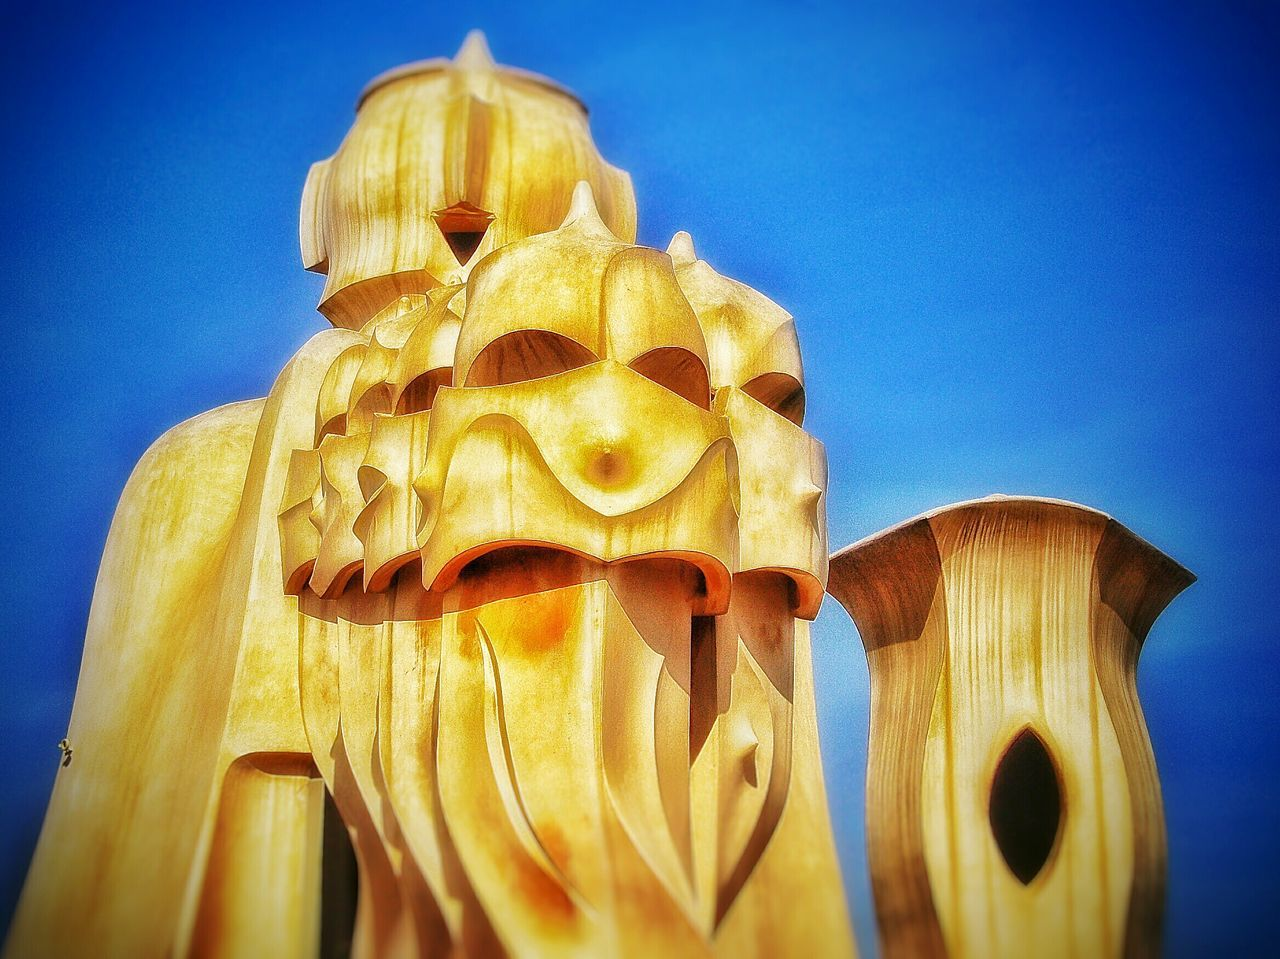 Barcellona 🇪🇸🇪🇸 Barcellona Barcellona Sunnyday  Gaudi Gaudi BarcelonaDesign By Gaudi EyeEm Best Shots EyeEm Best EditsSeeing The Sights